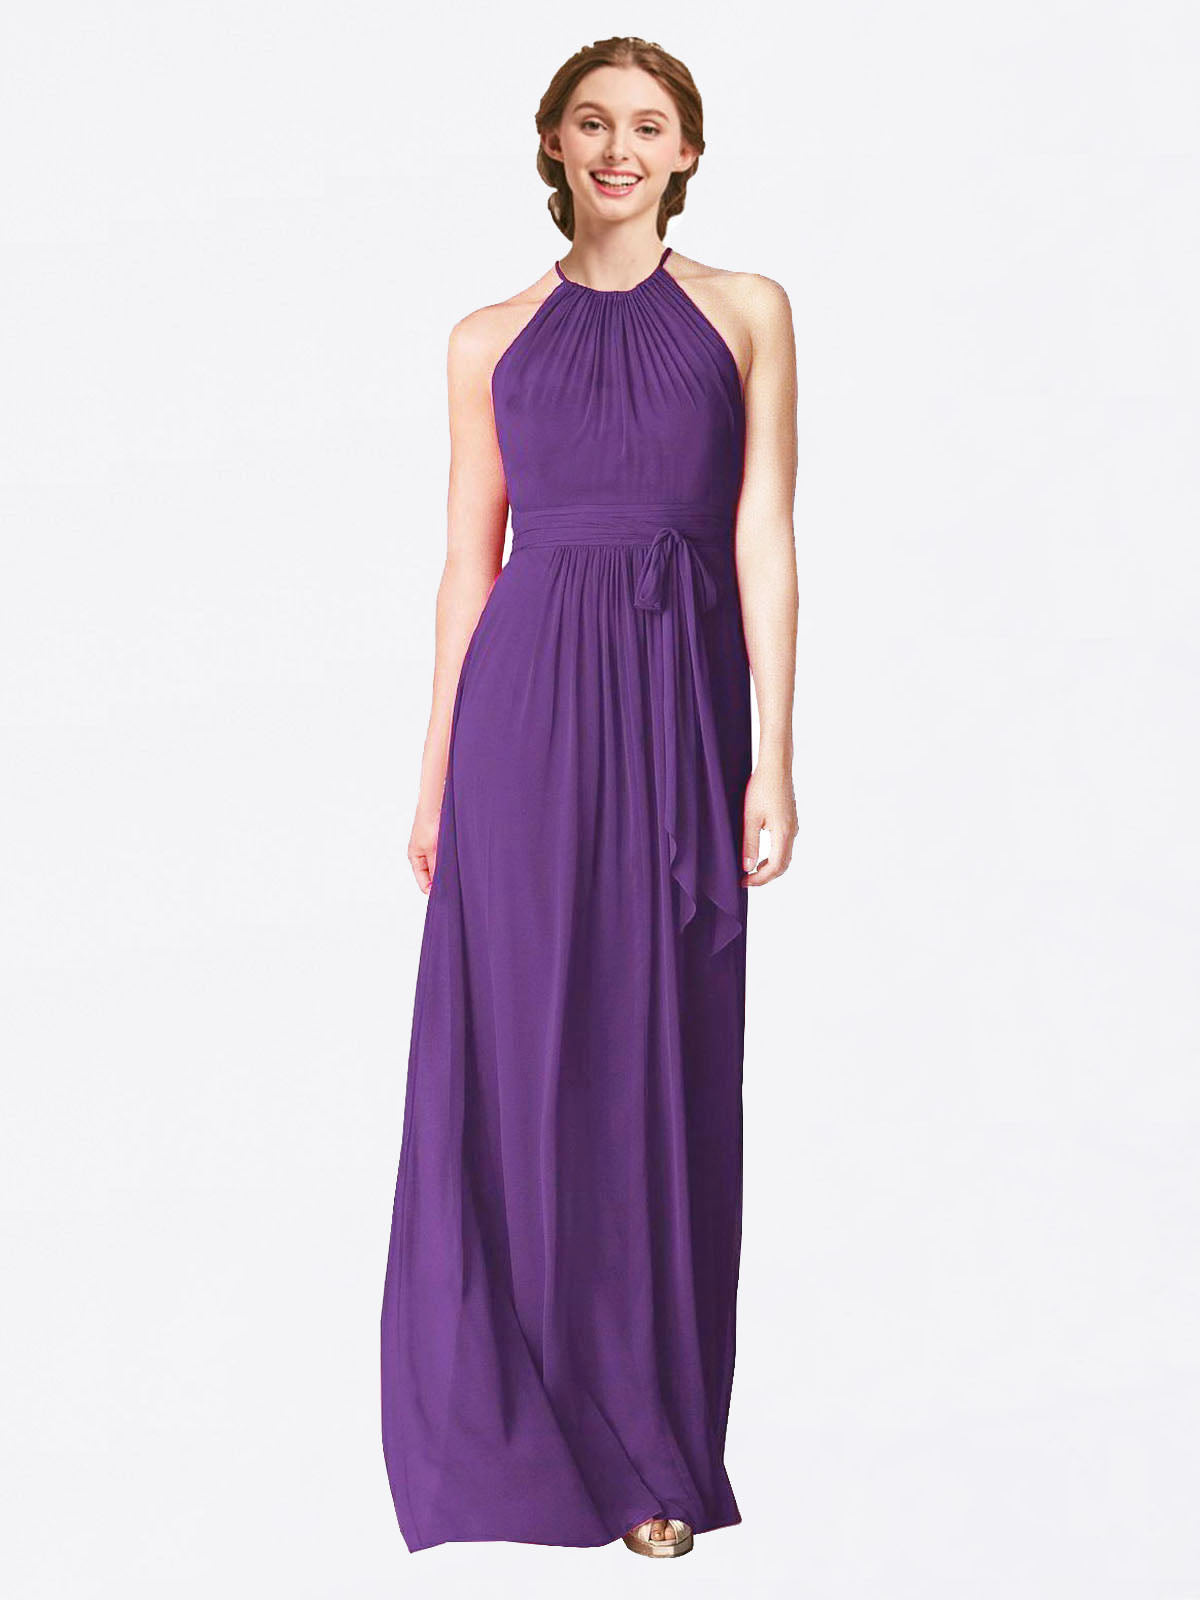 Long A-Line Halter Sleeveless Plum Purple Chiffon Bridesmaid Dress Laura